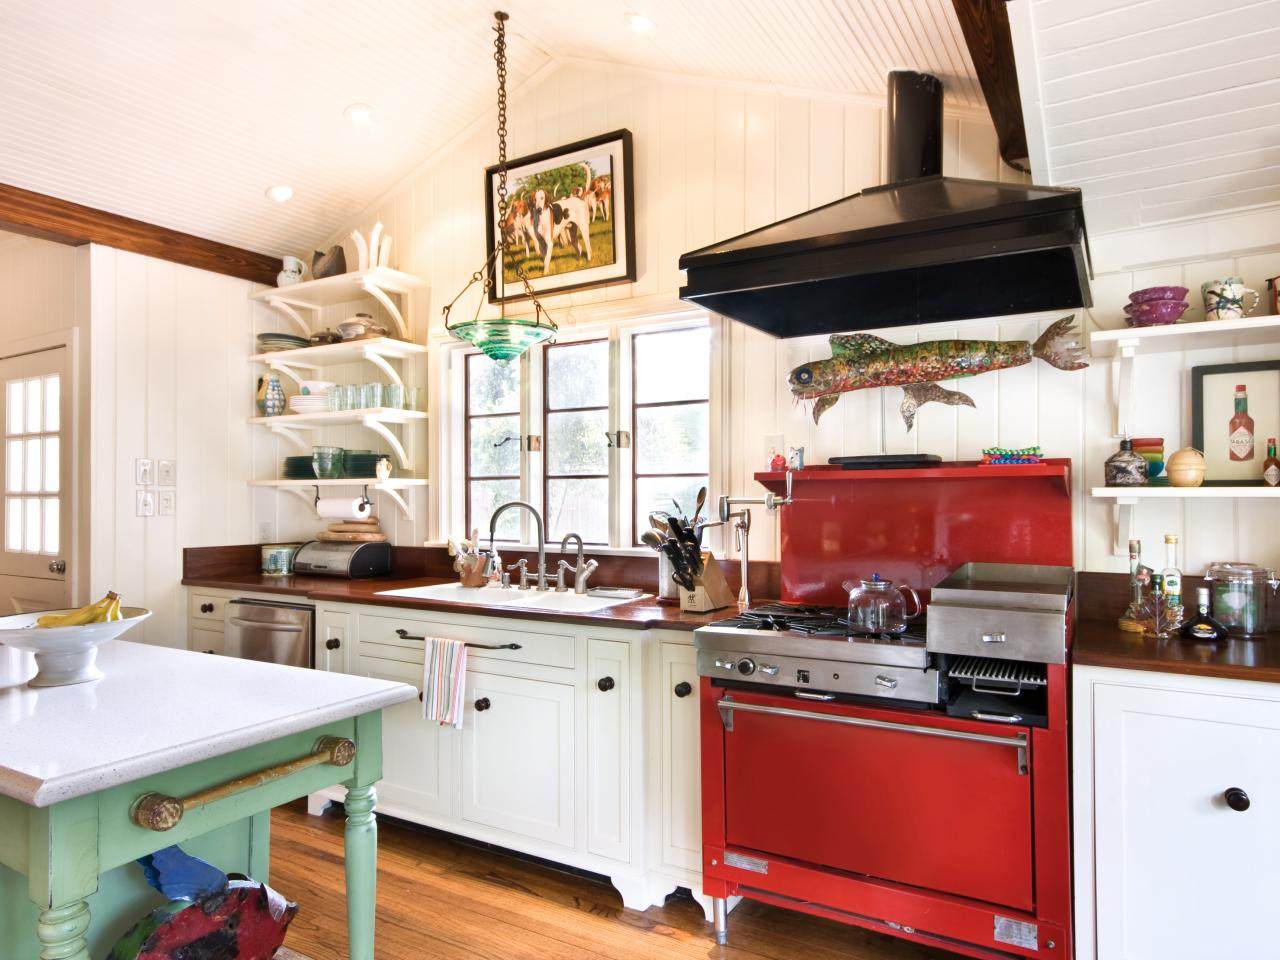 White Craftsman Kitchen With Red Oven